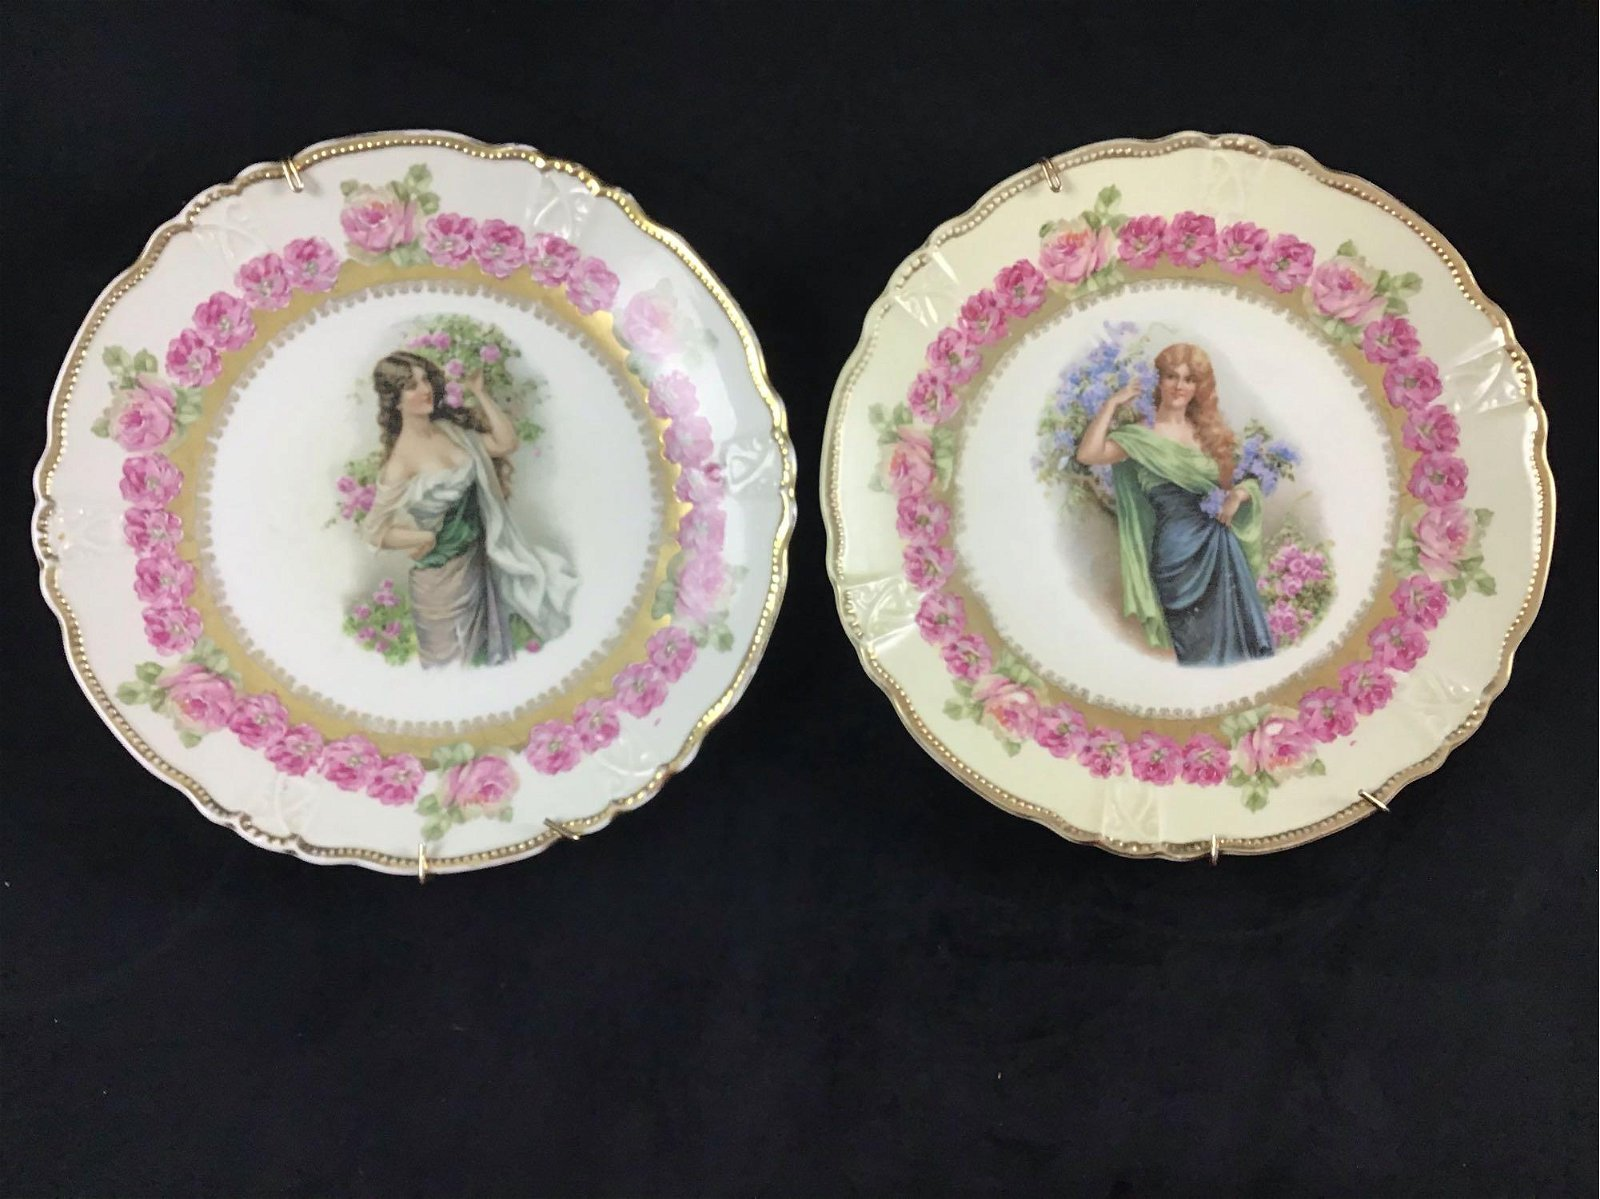 Lot of 2 Crown Germany Circa 1900s Porcelain Plates